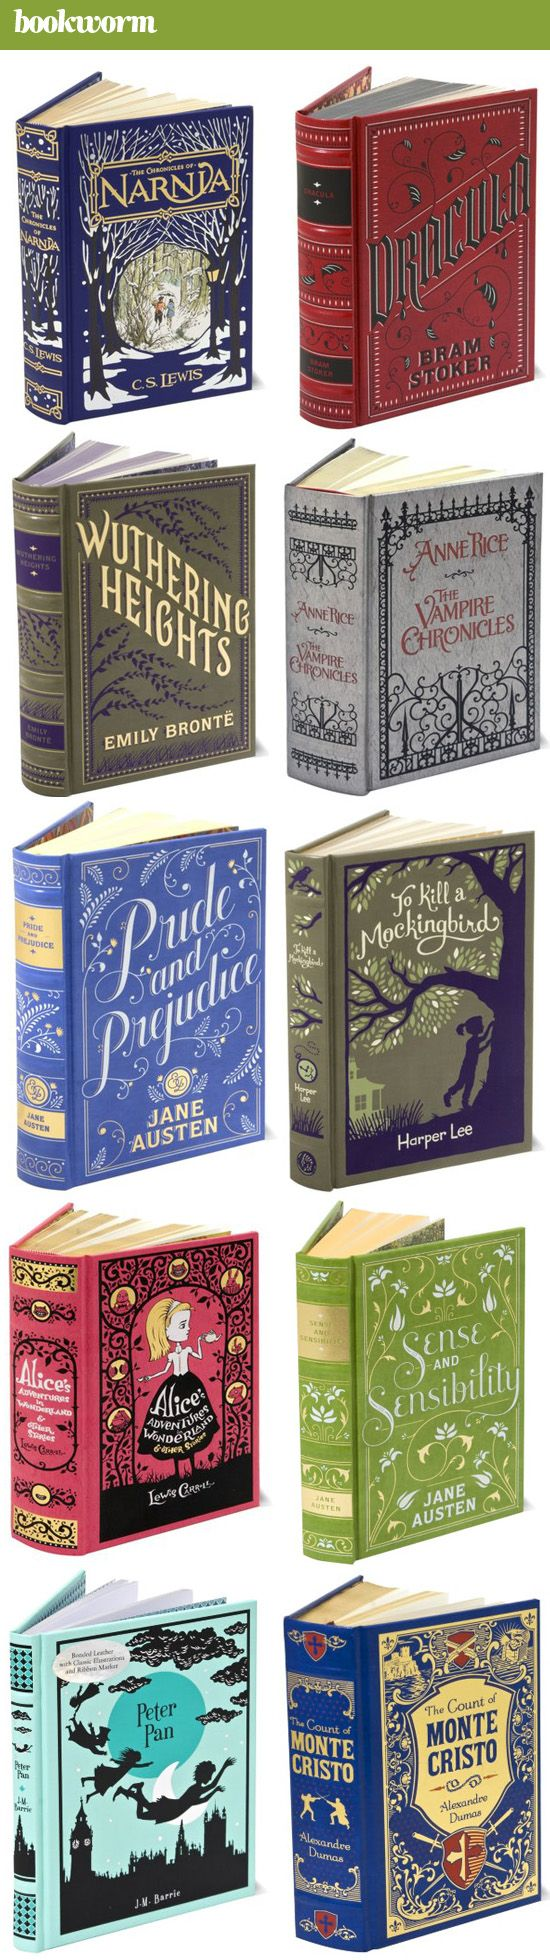 New Barnes and Noble editions! I would love the copy of Peter Pan, The Chronicles of Narnia, or The Count of Monte Cristo (I love you Alexander Dumas <3 ):